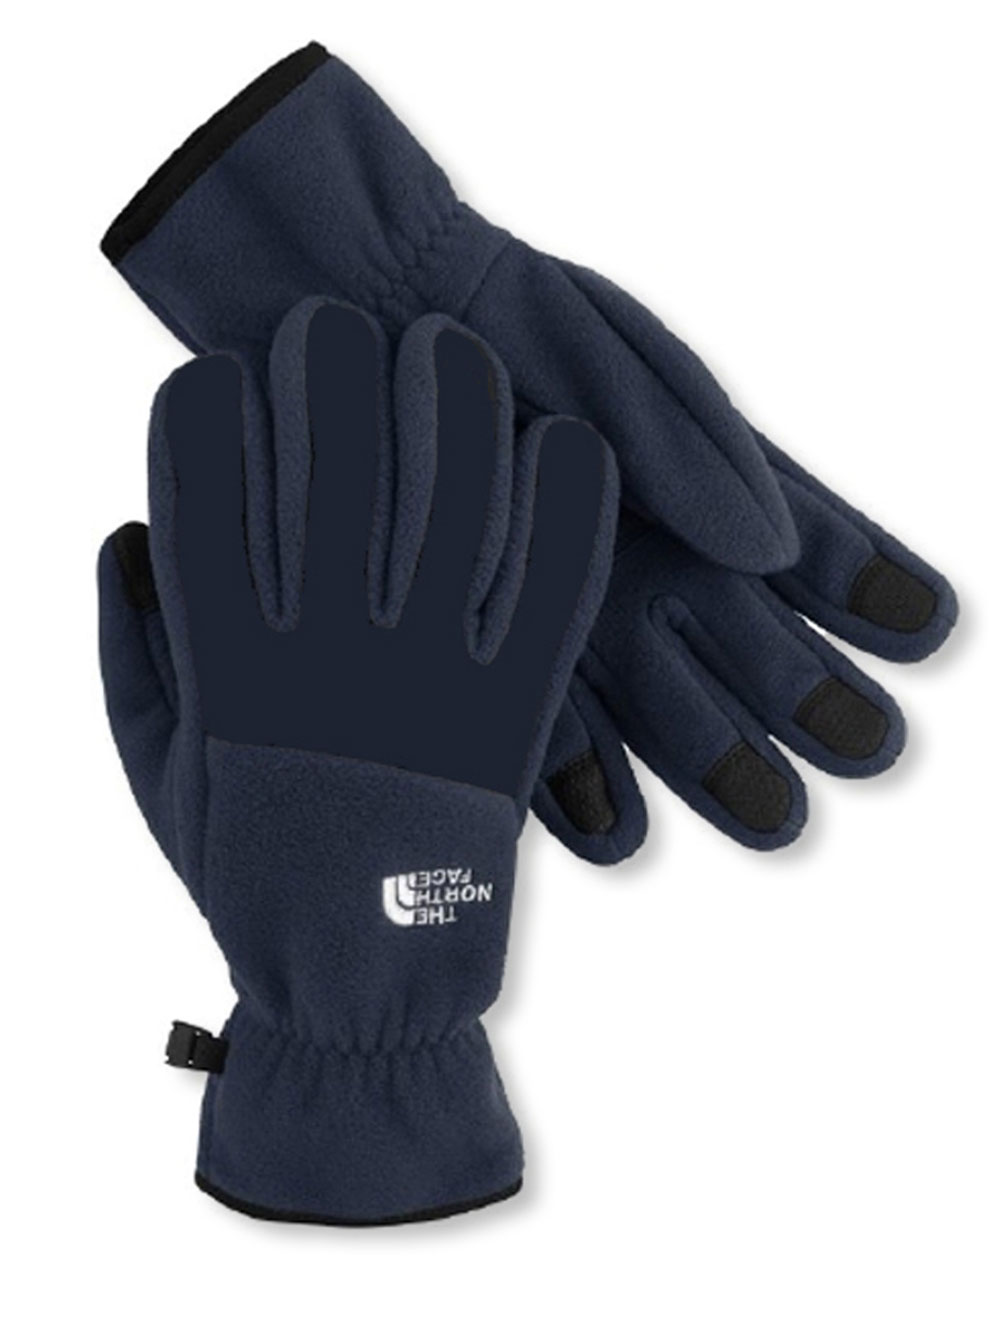 The North Face Men's Denali Glove (Sizes S - XL) - deepwater blue, m